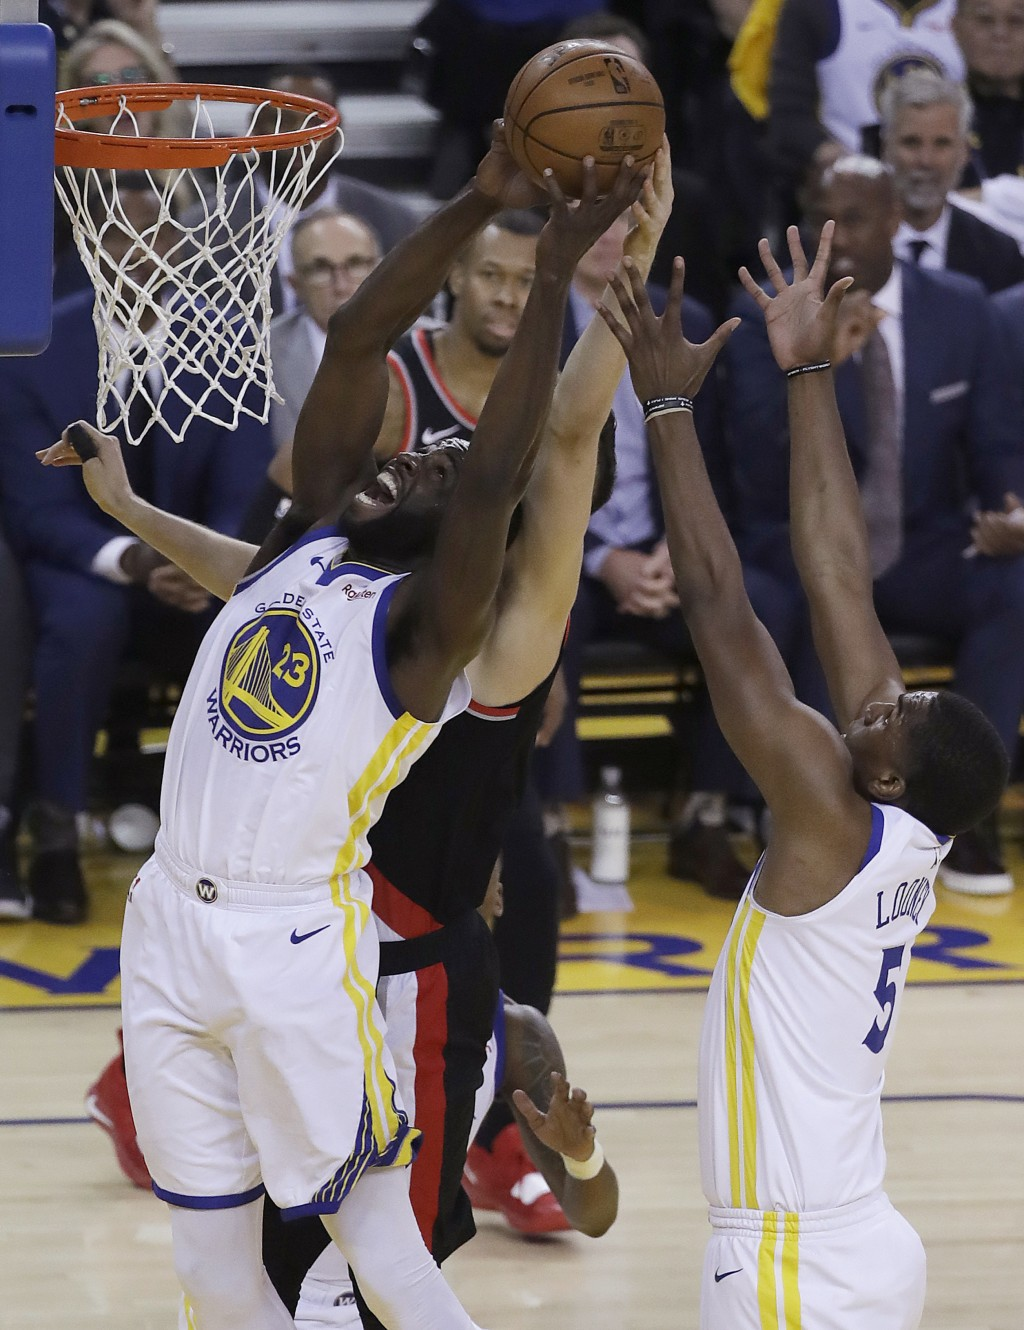 Golden State Warriors forward Draymond Green (23) grabs a rebound against the Portland Trail Blazers during the first half of Game 1 of the NBA basket...